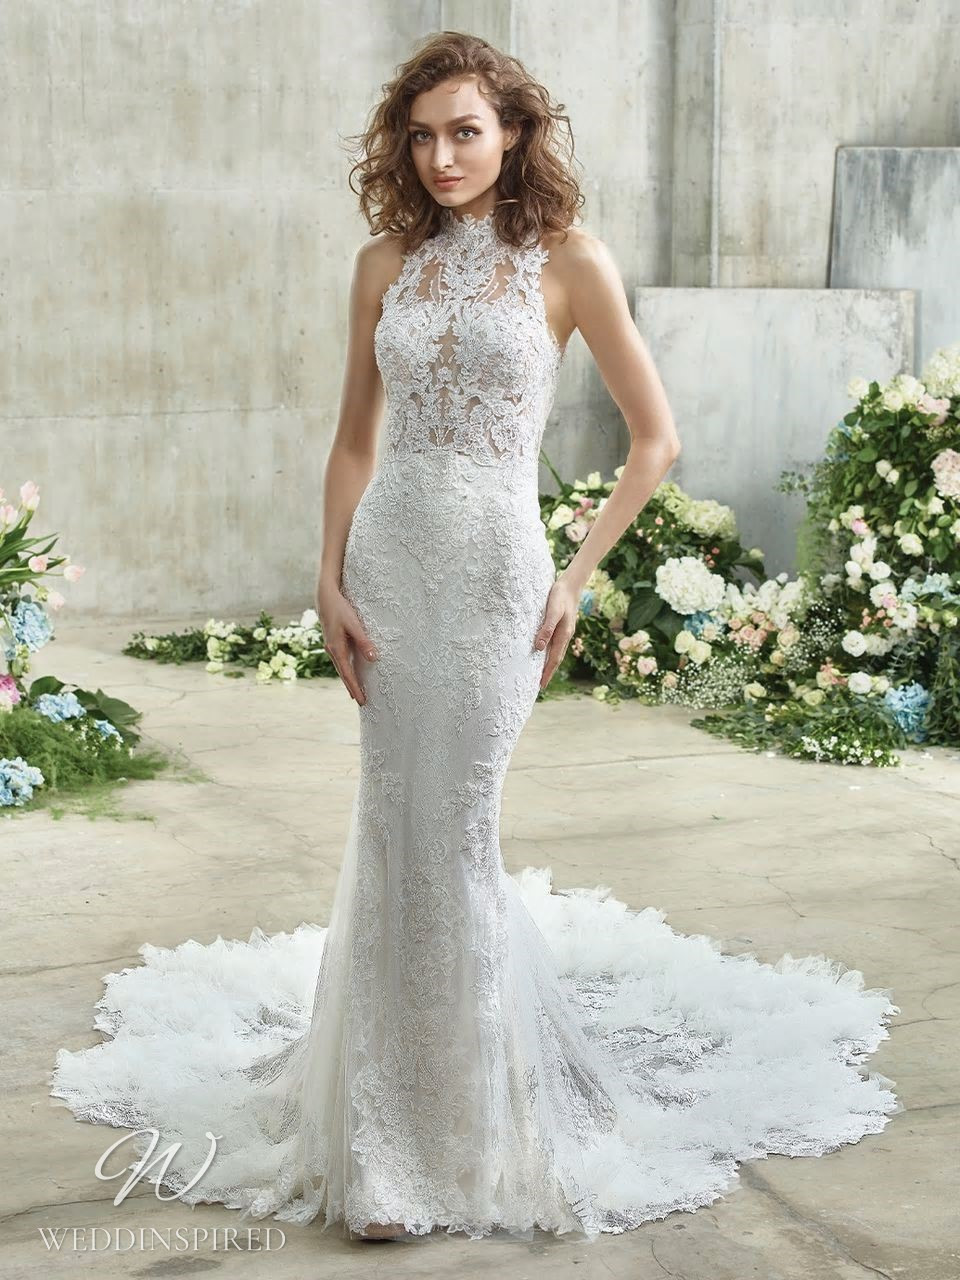 A Badgley Mischka lace halterneck mermaid wedding dress with a train